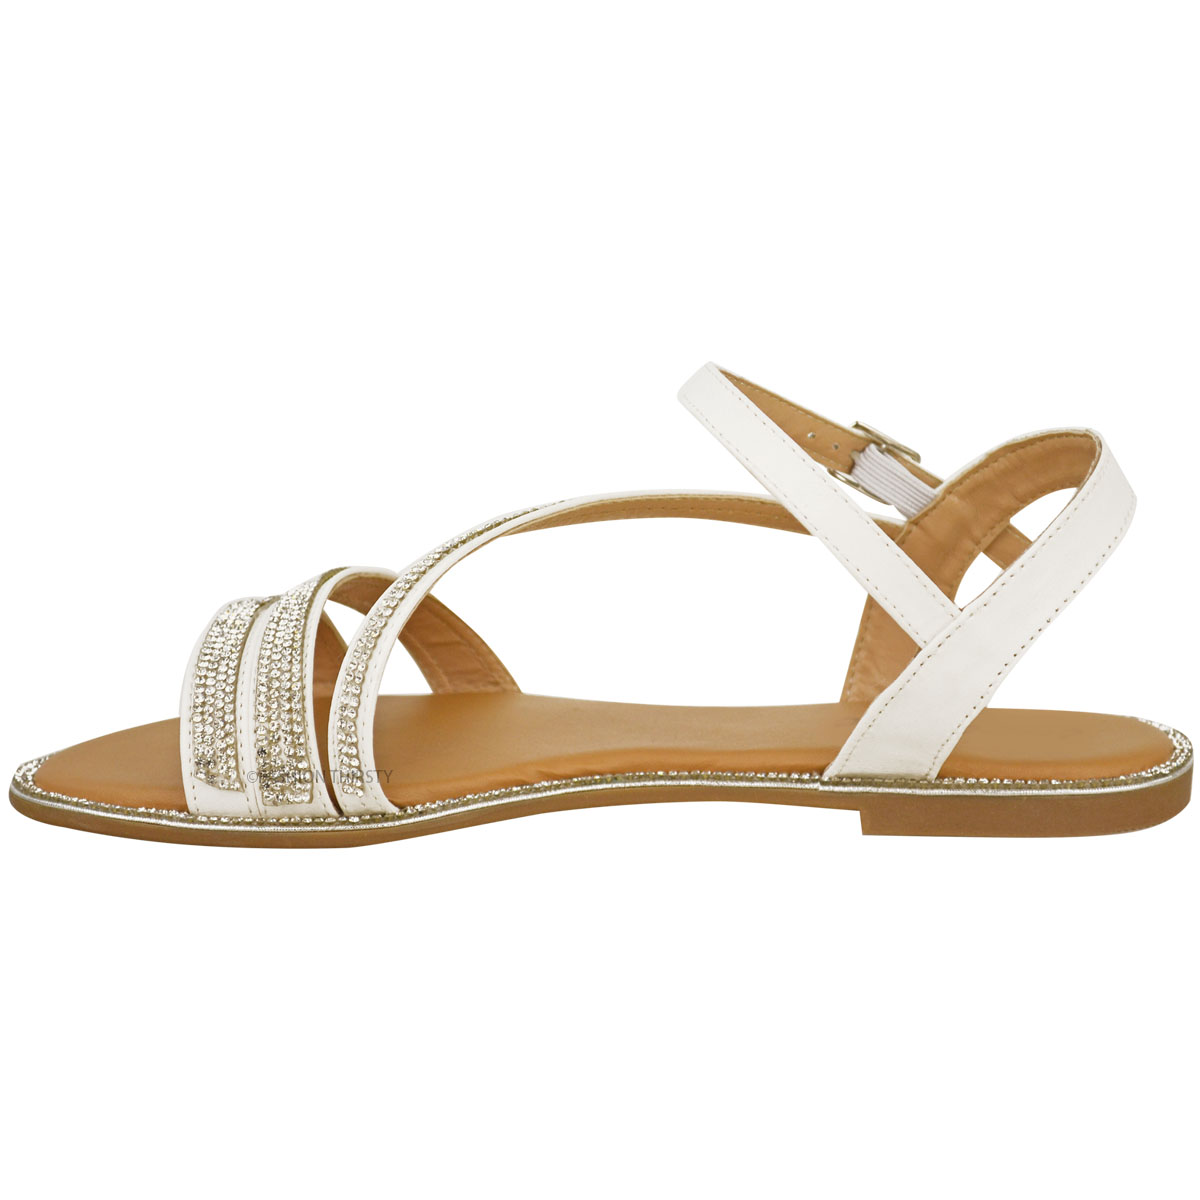 dvlnpxiuf.ga carries a huge selection of summer sandals for women. Think chic platform sandals for warm-weather cocktails, trendy closed toe sandals for women, and great espadrilles for vacation. We also have flip flops for the beach and wedge sandals for special occasions.